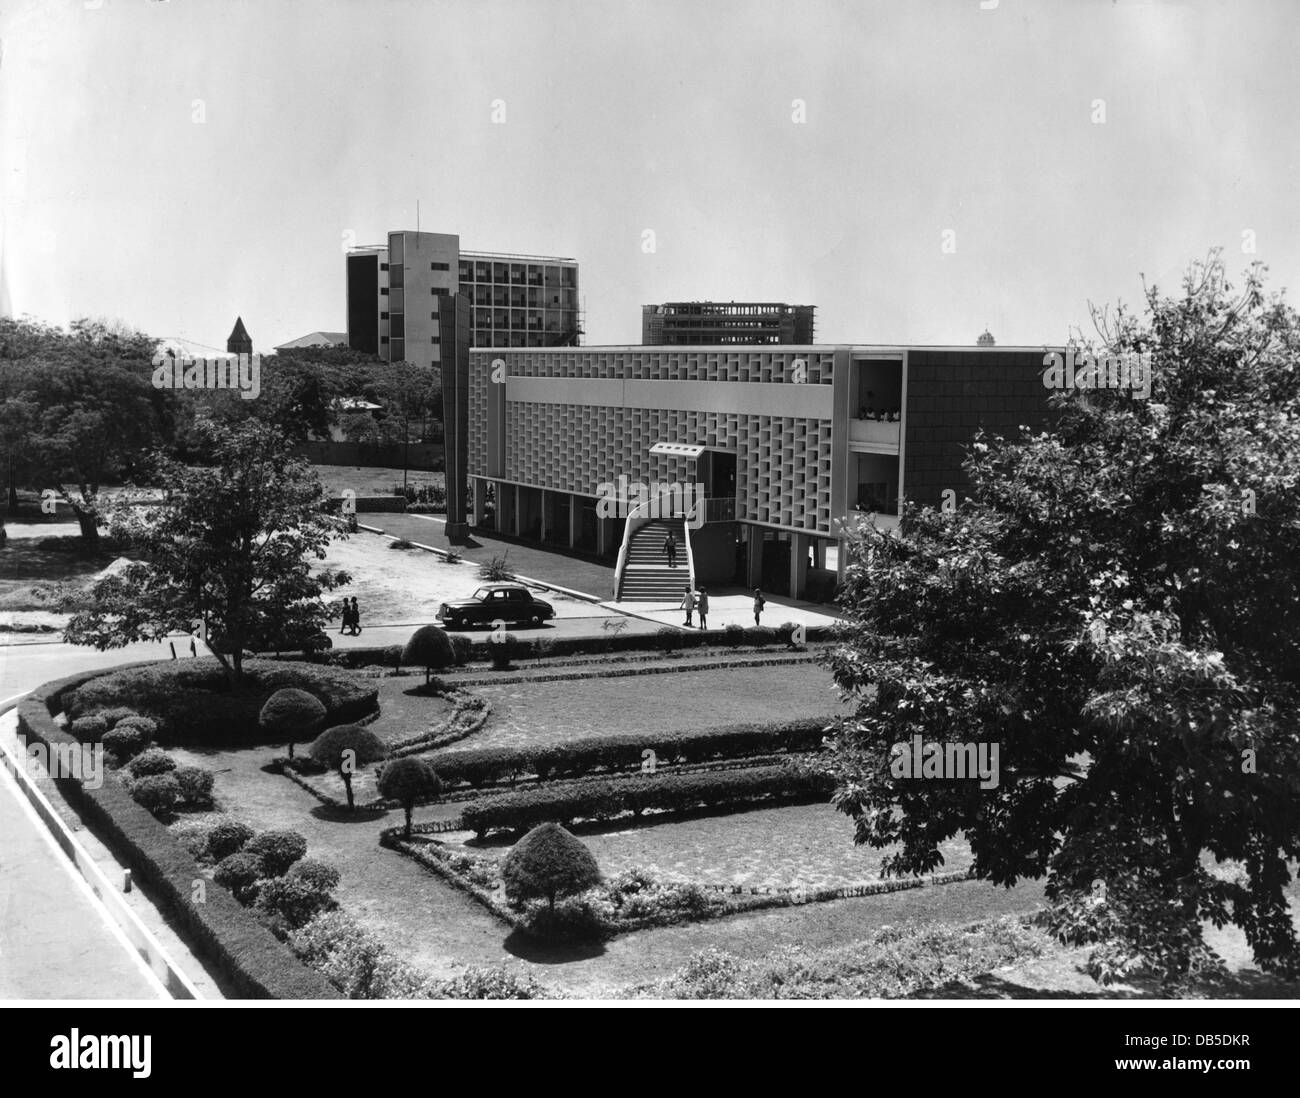 geography / travel, Ghana, Accra, buildings, central library, exterior view, circa 1960s, Additional-Rights-Clearences Stock Photo